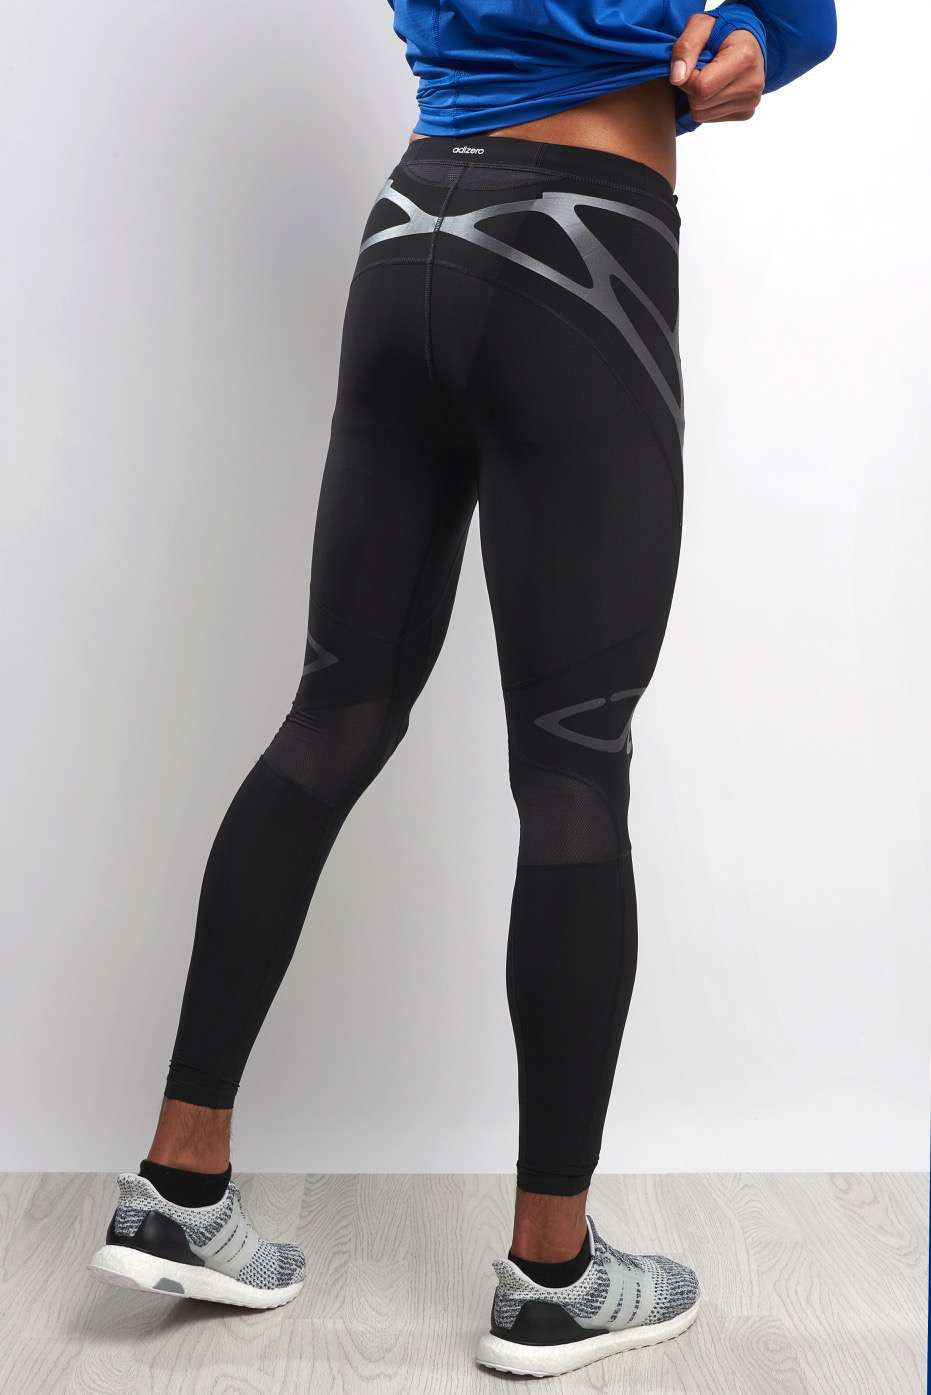 ADIDAS Adizero Sprintweb Long Tight Men image 3 - The Sports Edit